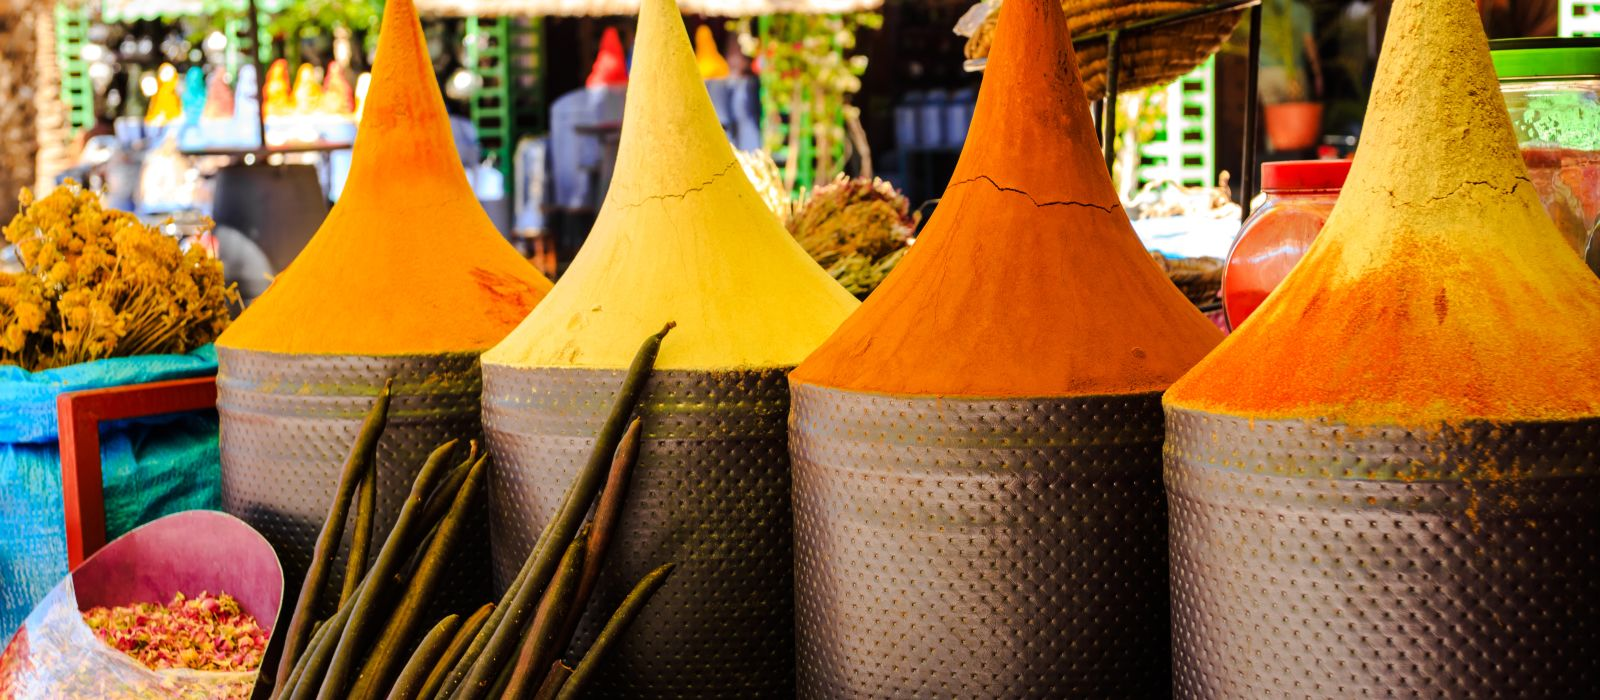 Spice stall in Marrakech - cuisine in Morocco